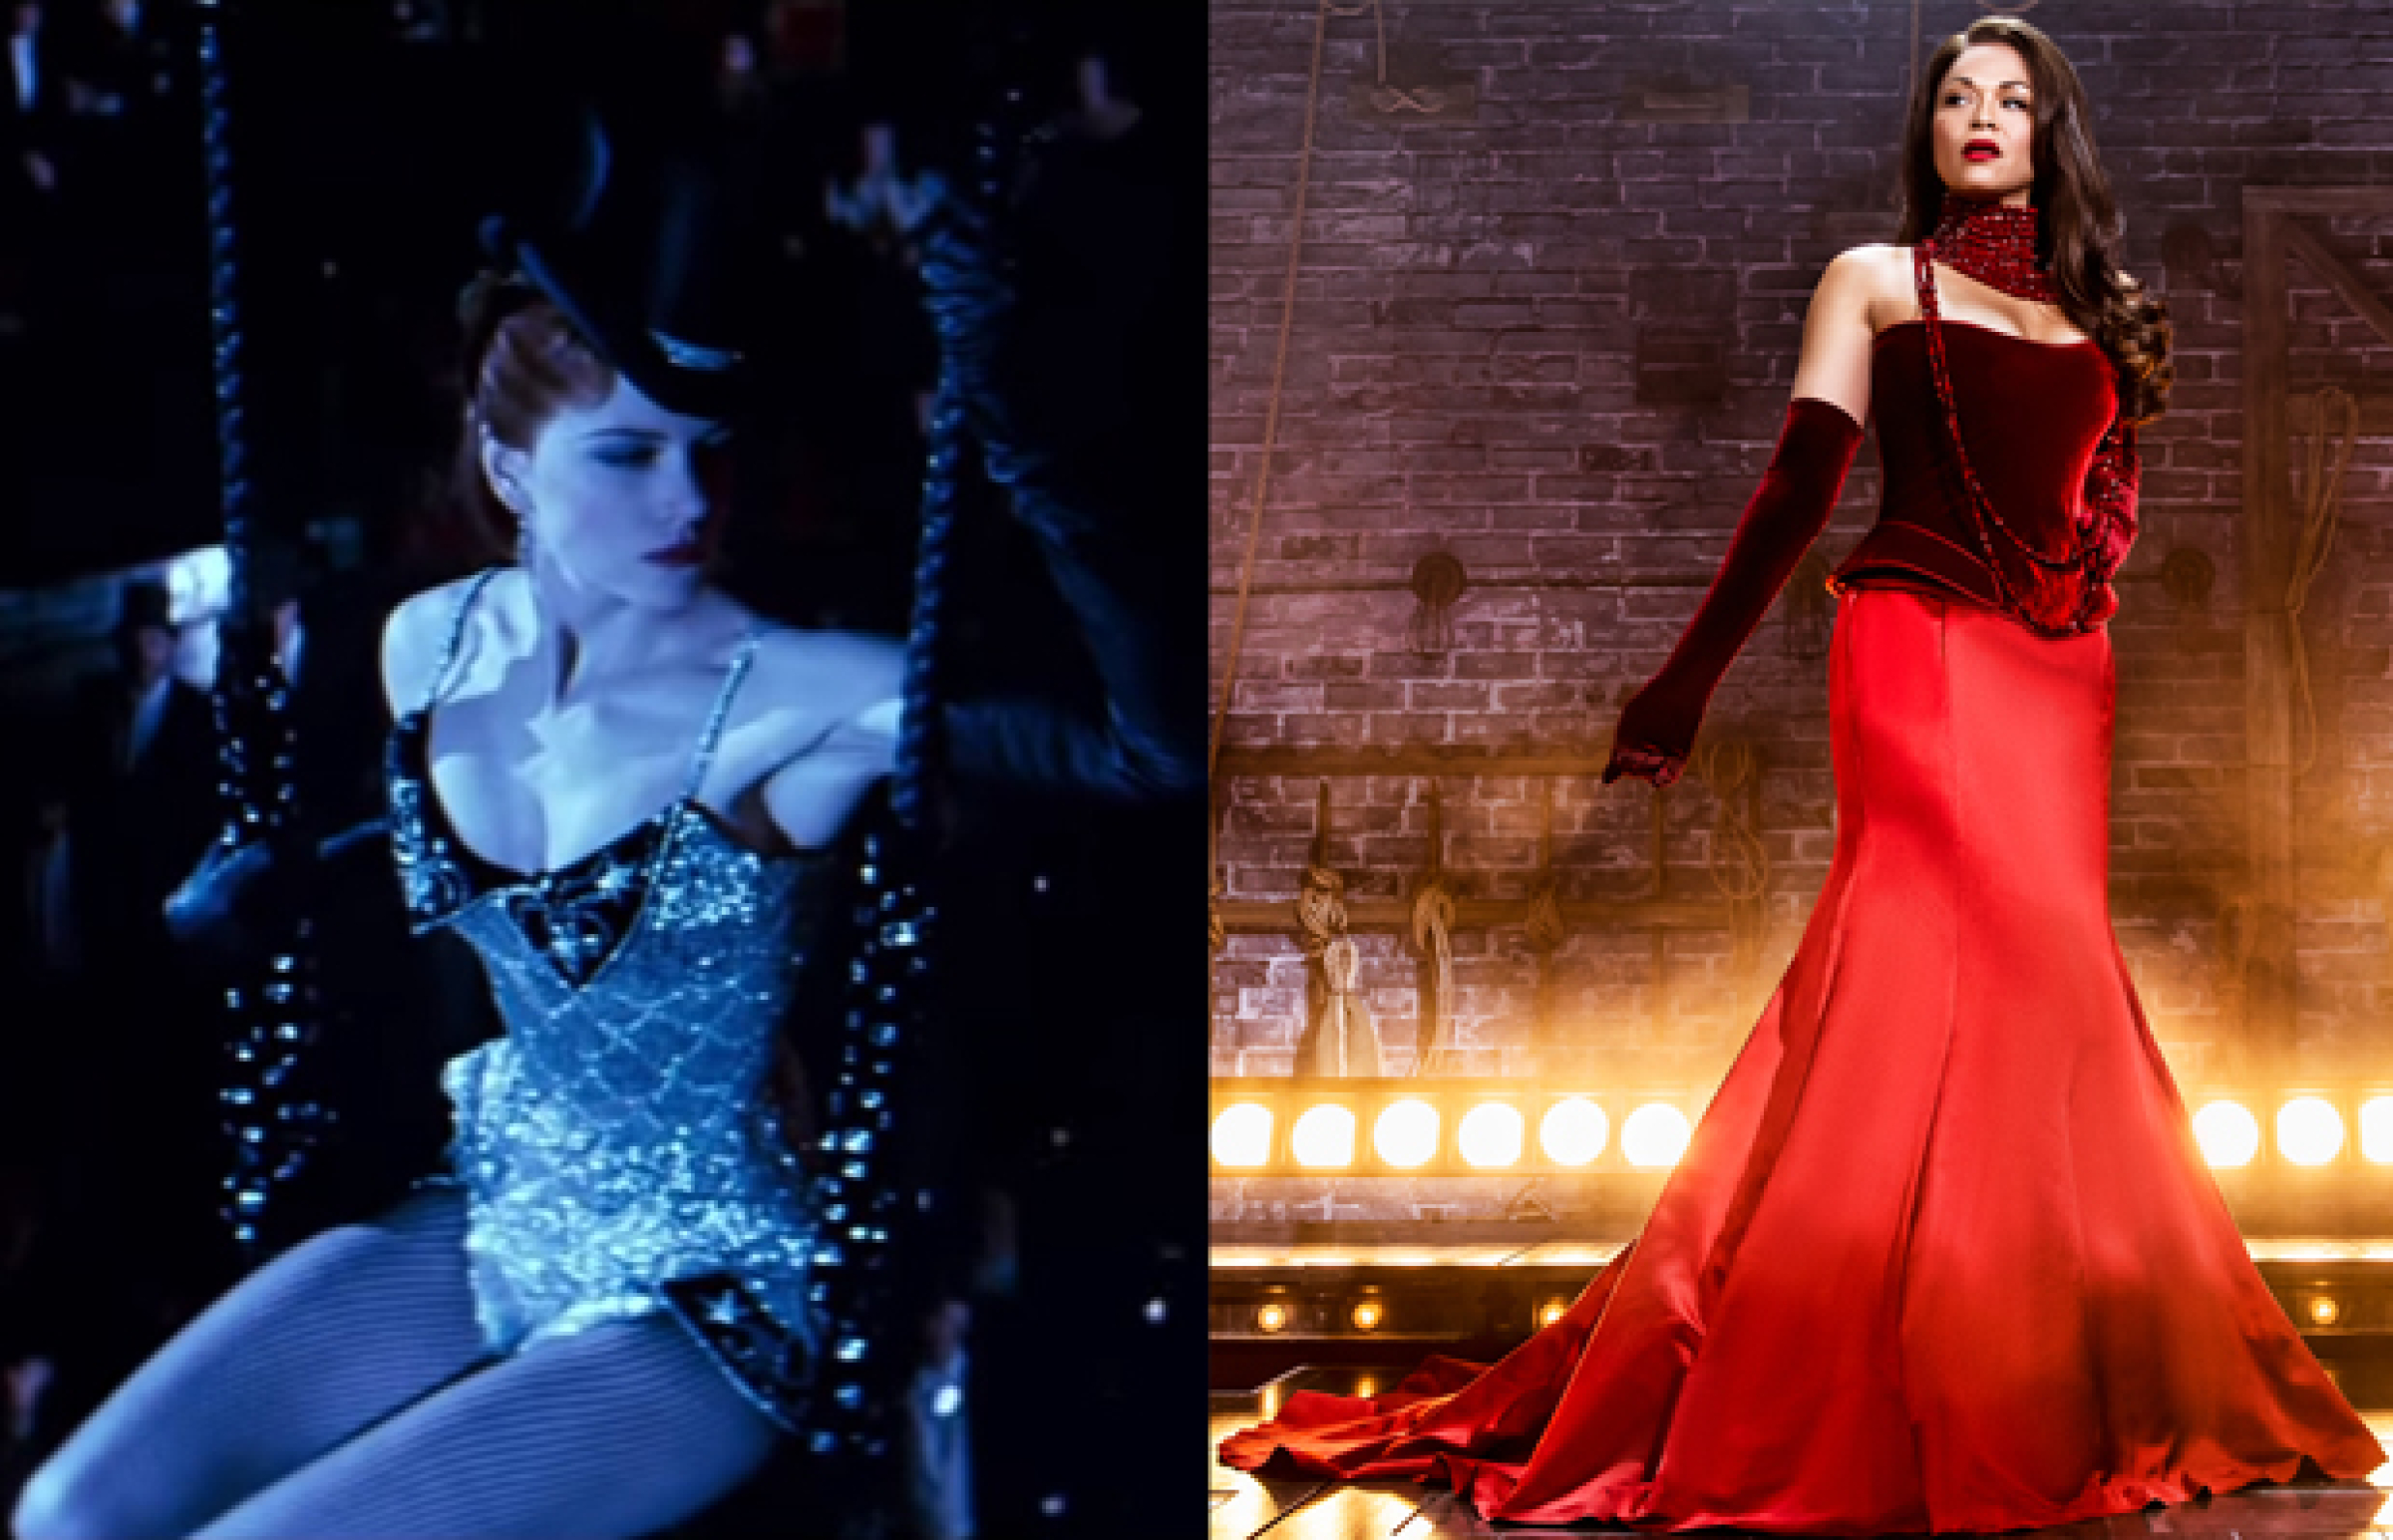 Moulin Rouge The Musical Versus Moulin Rouge The Movie A